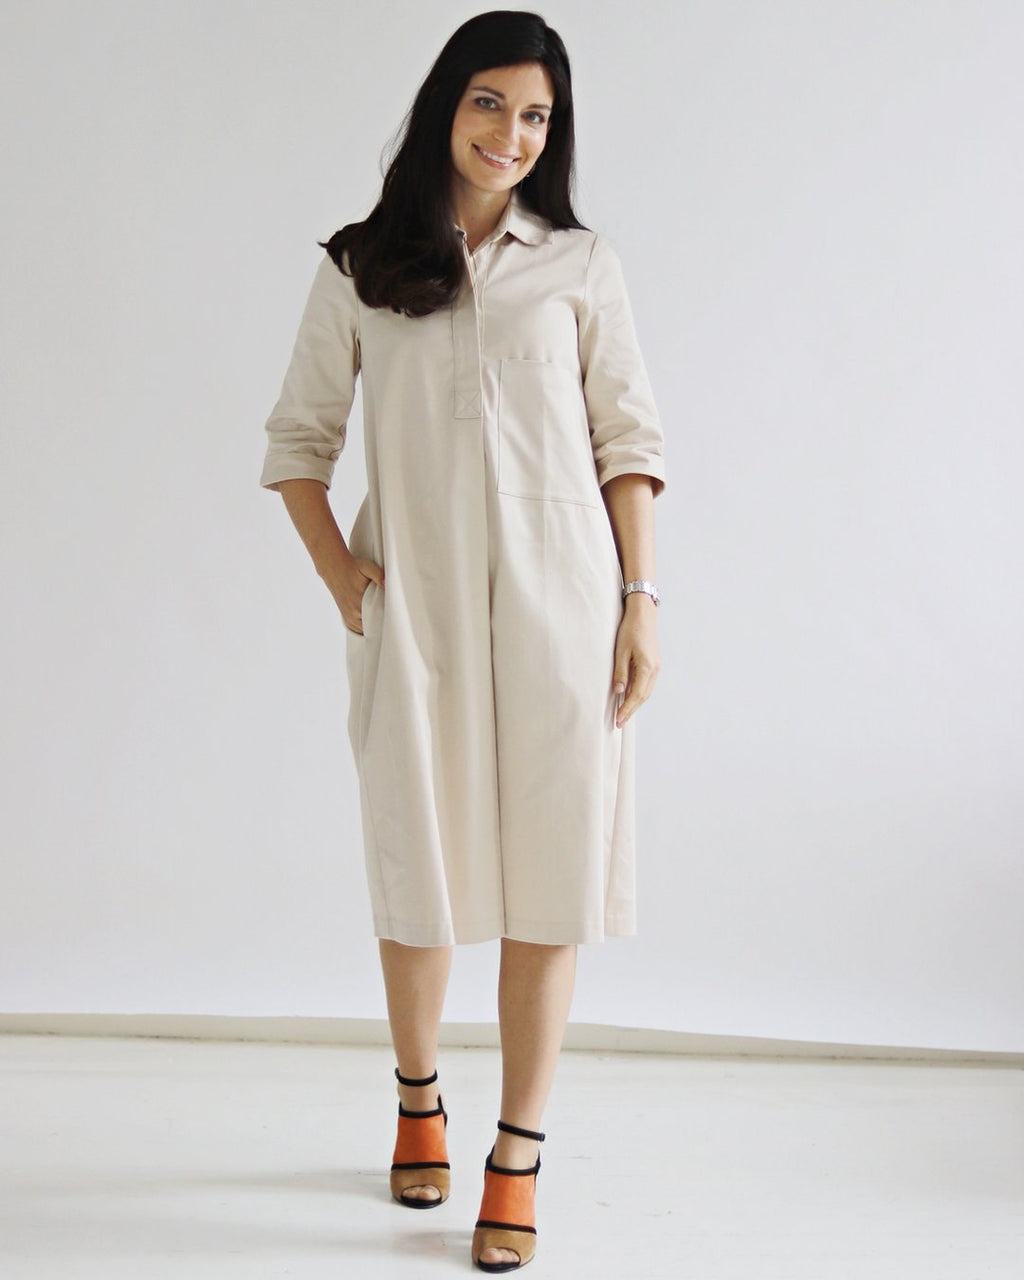 Ella Creme Dress - Sarah Feldman Modest Clothing